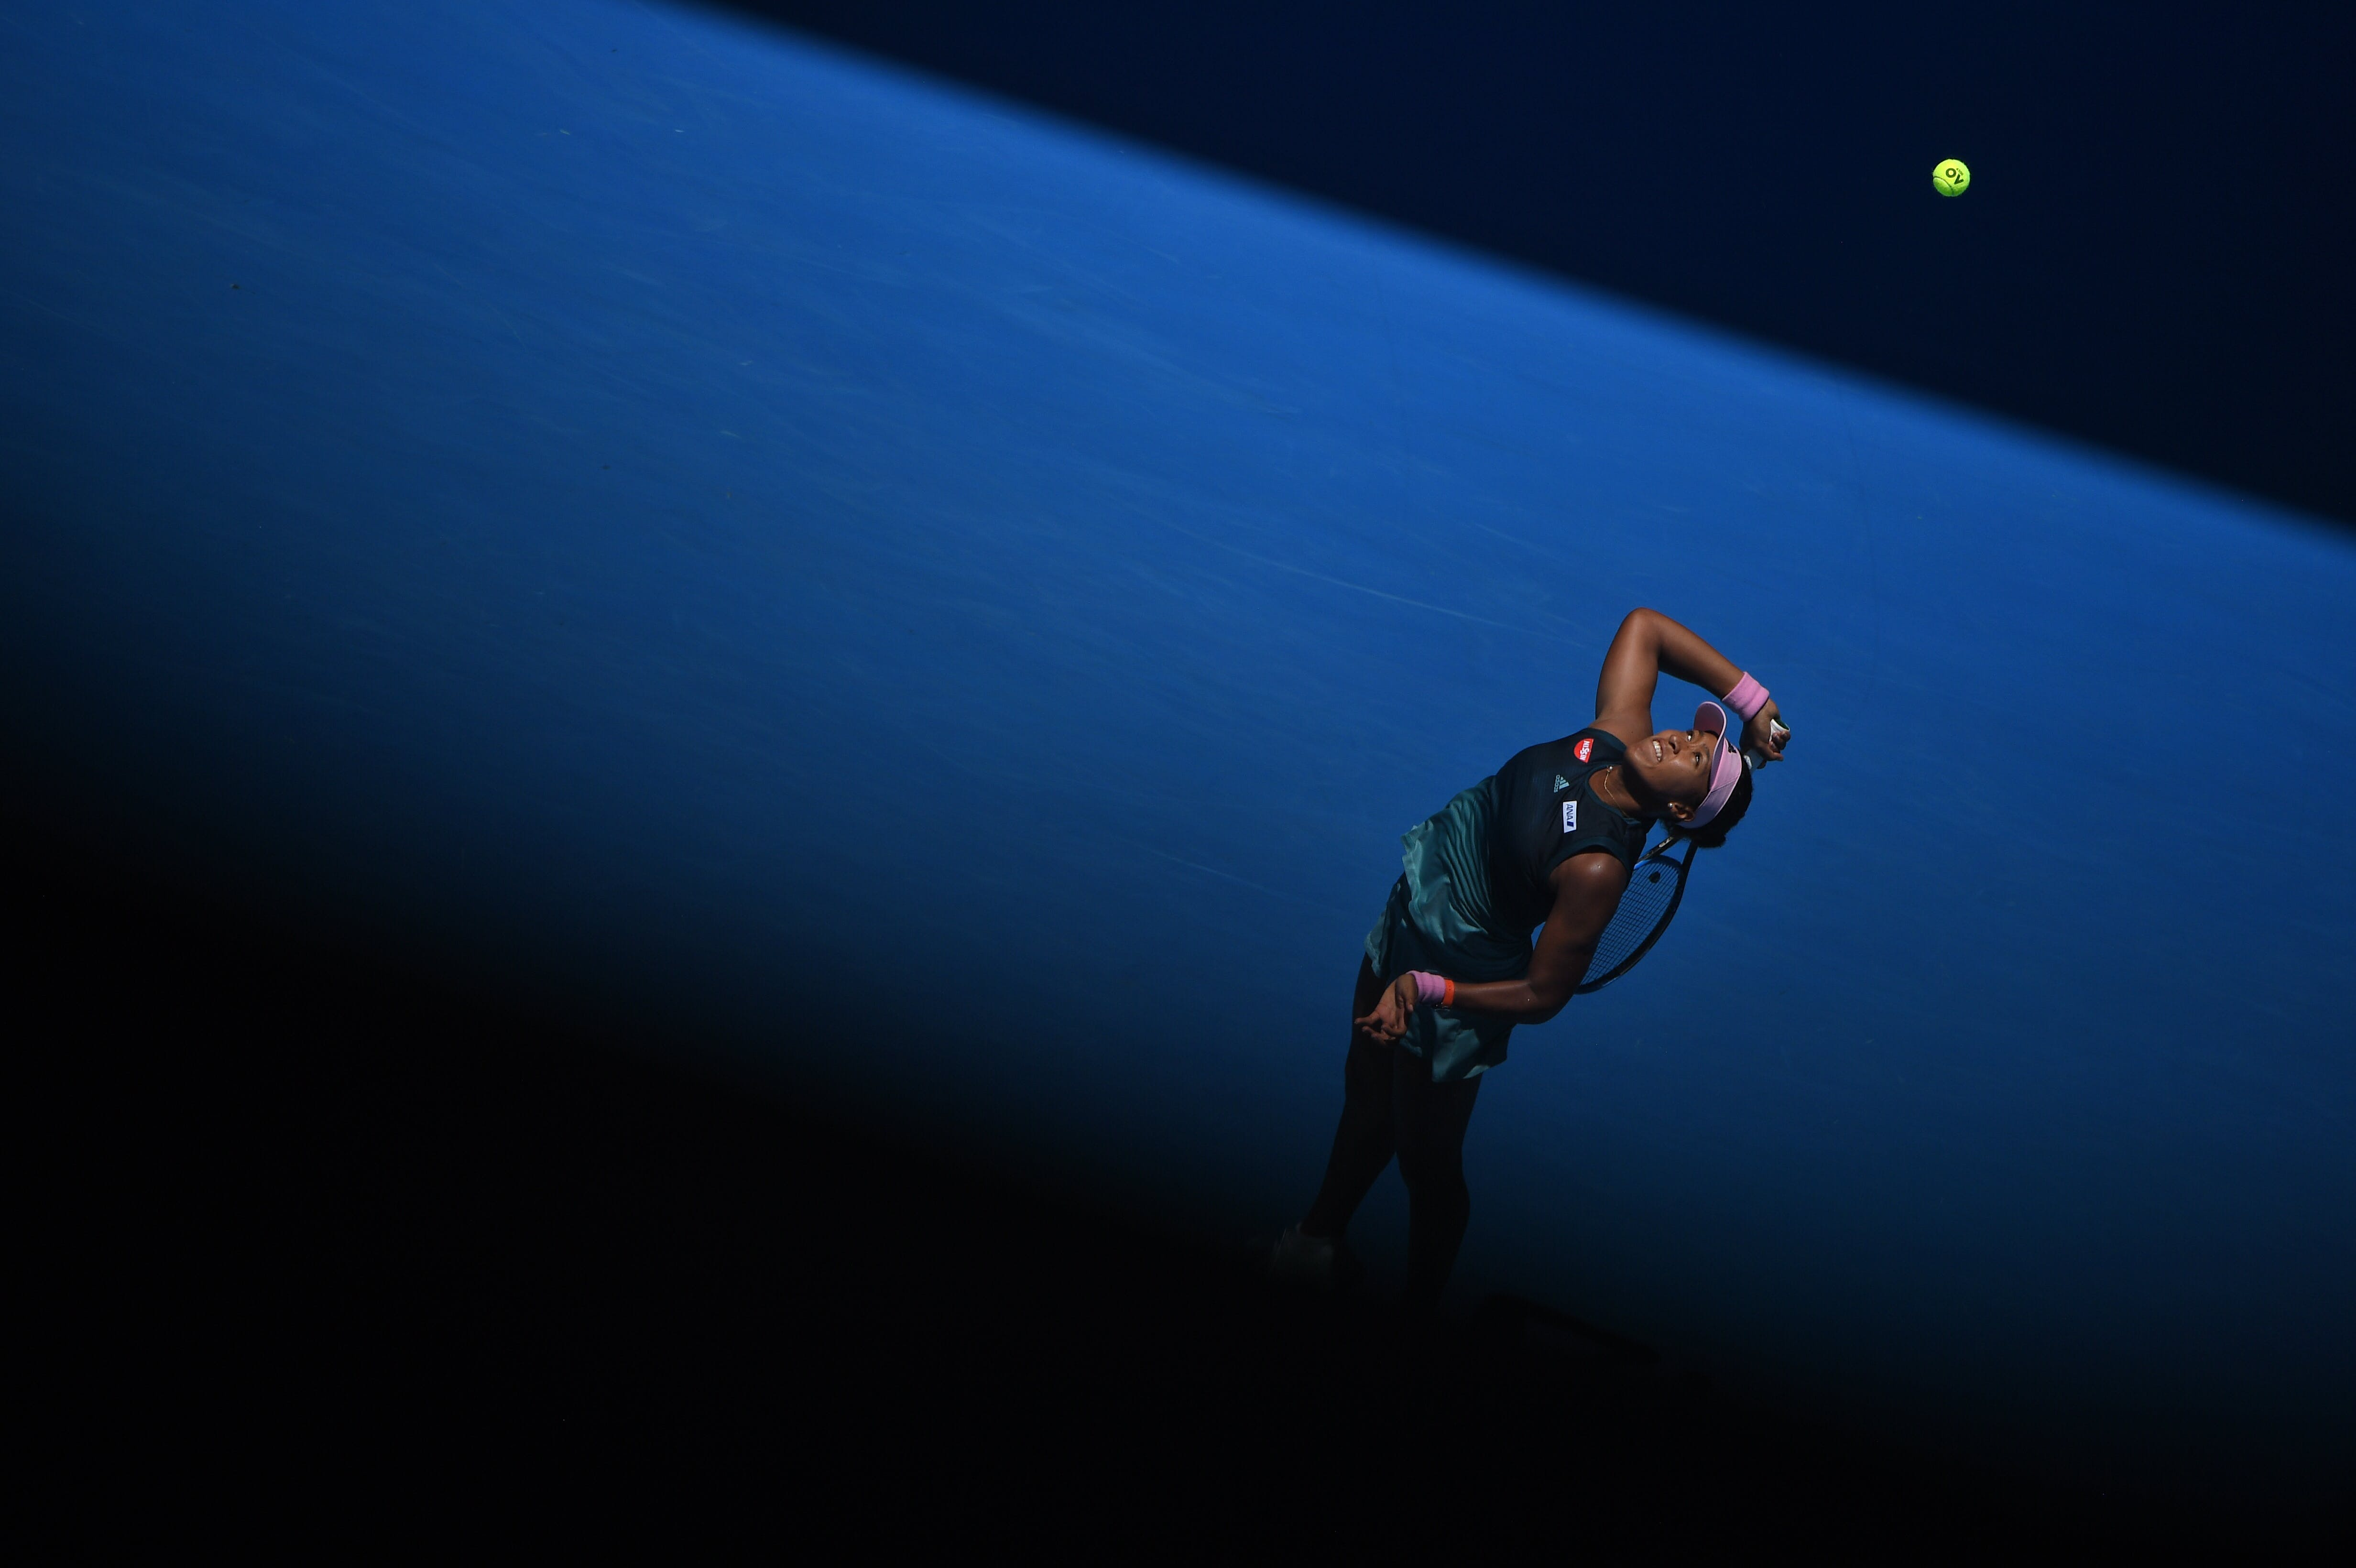 Naomi Osaka serving in the shadow during the Australian Open 2019